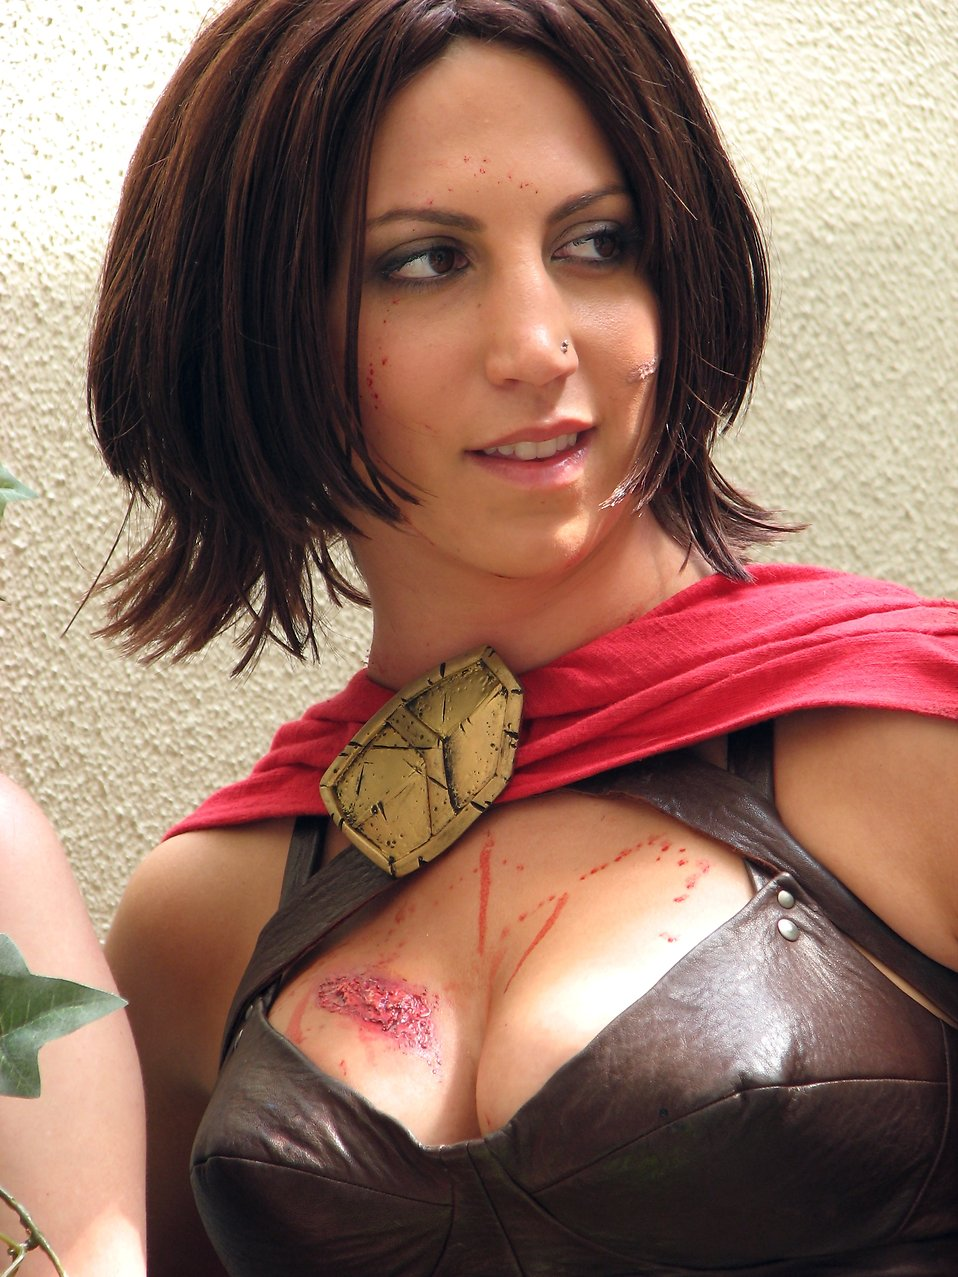 Closeup portrait of a beautiful girl in warrior costume at Dragoncon 2008 : Free Stock Photo